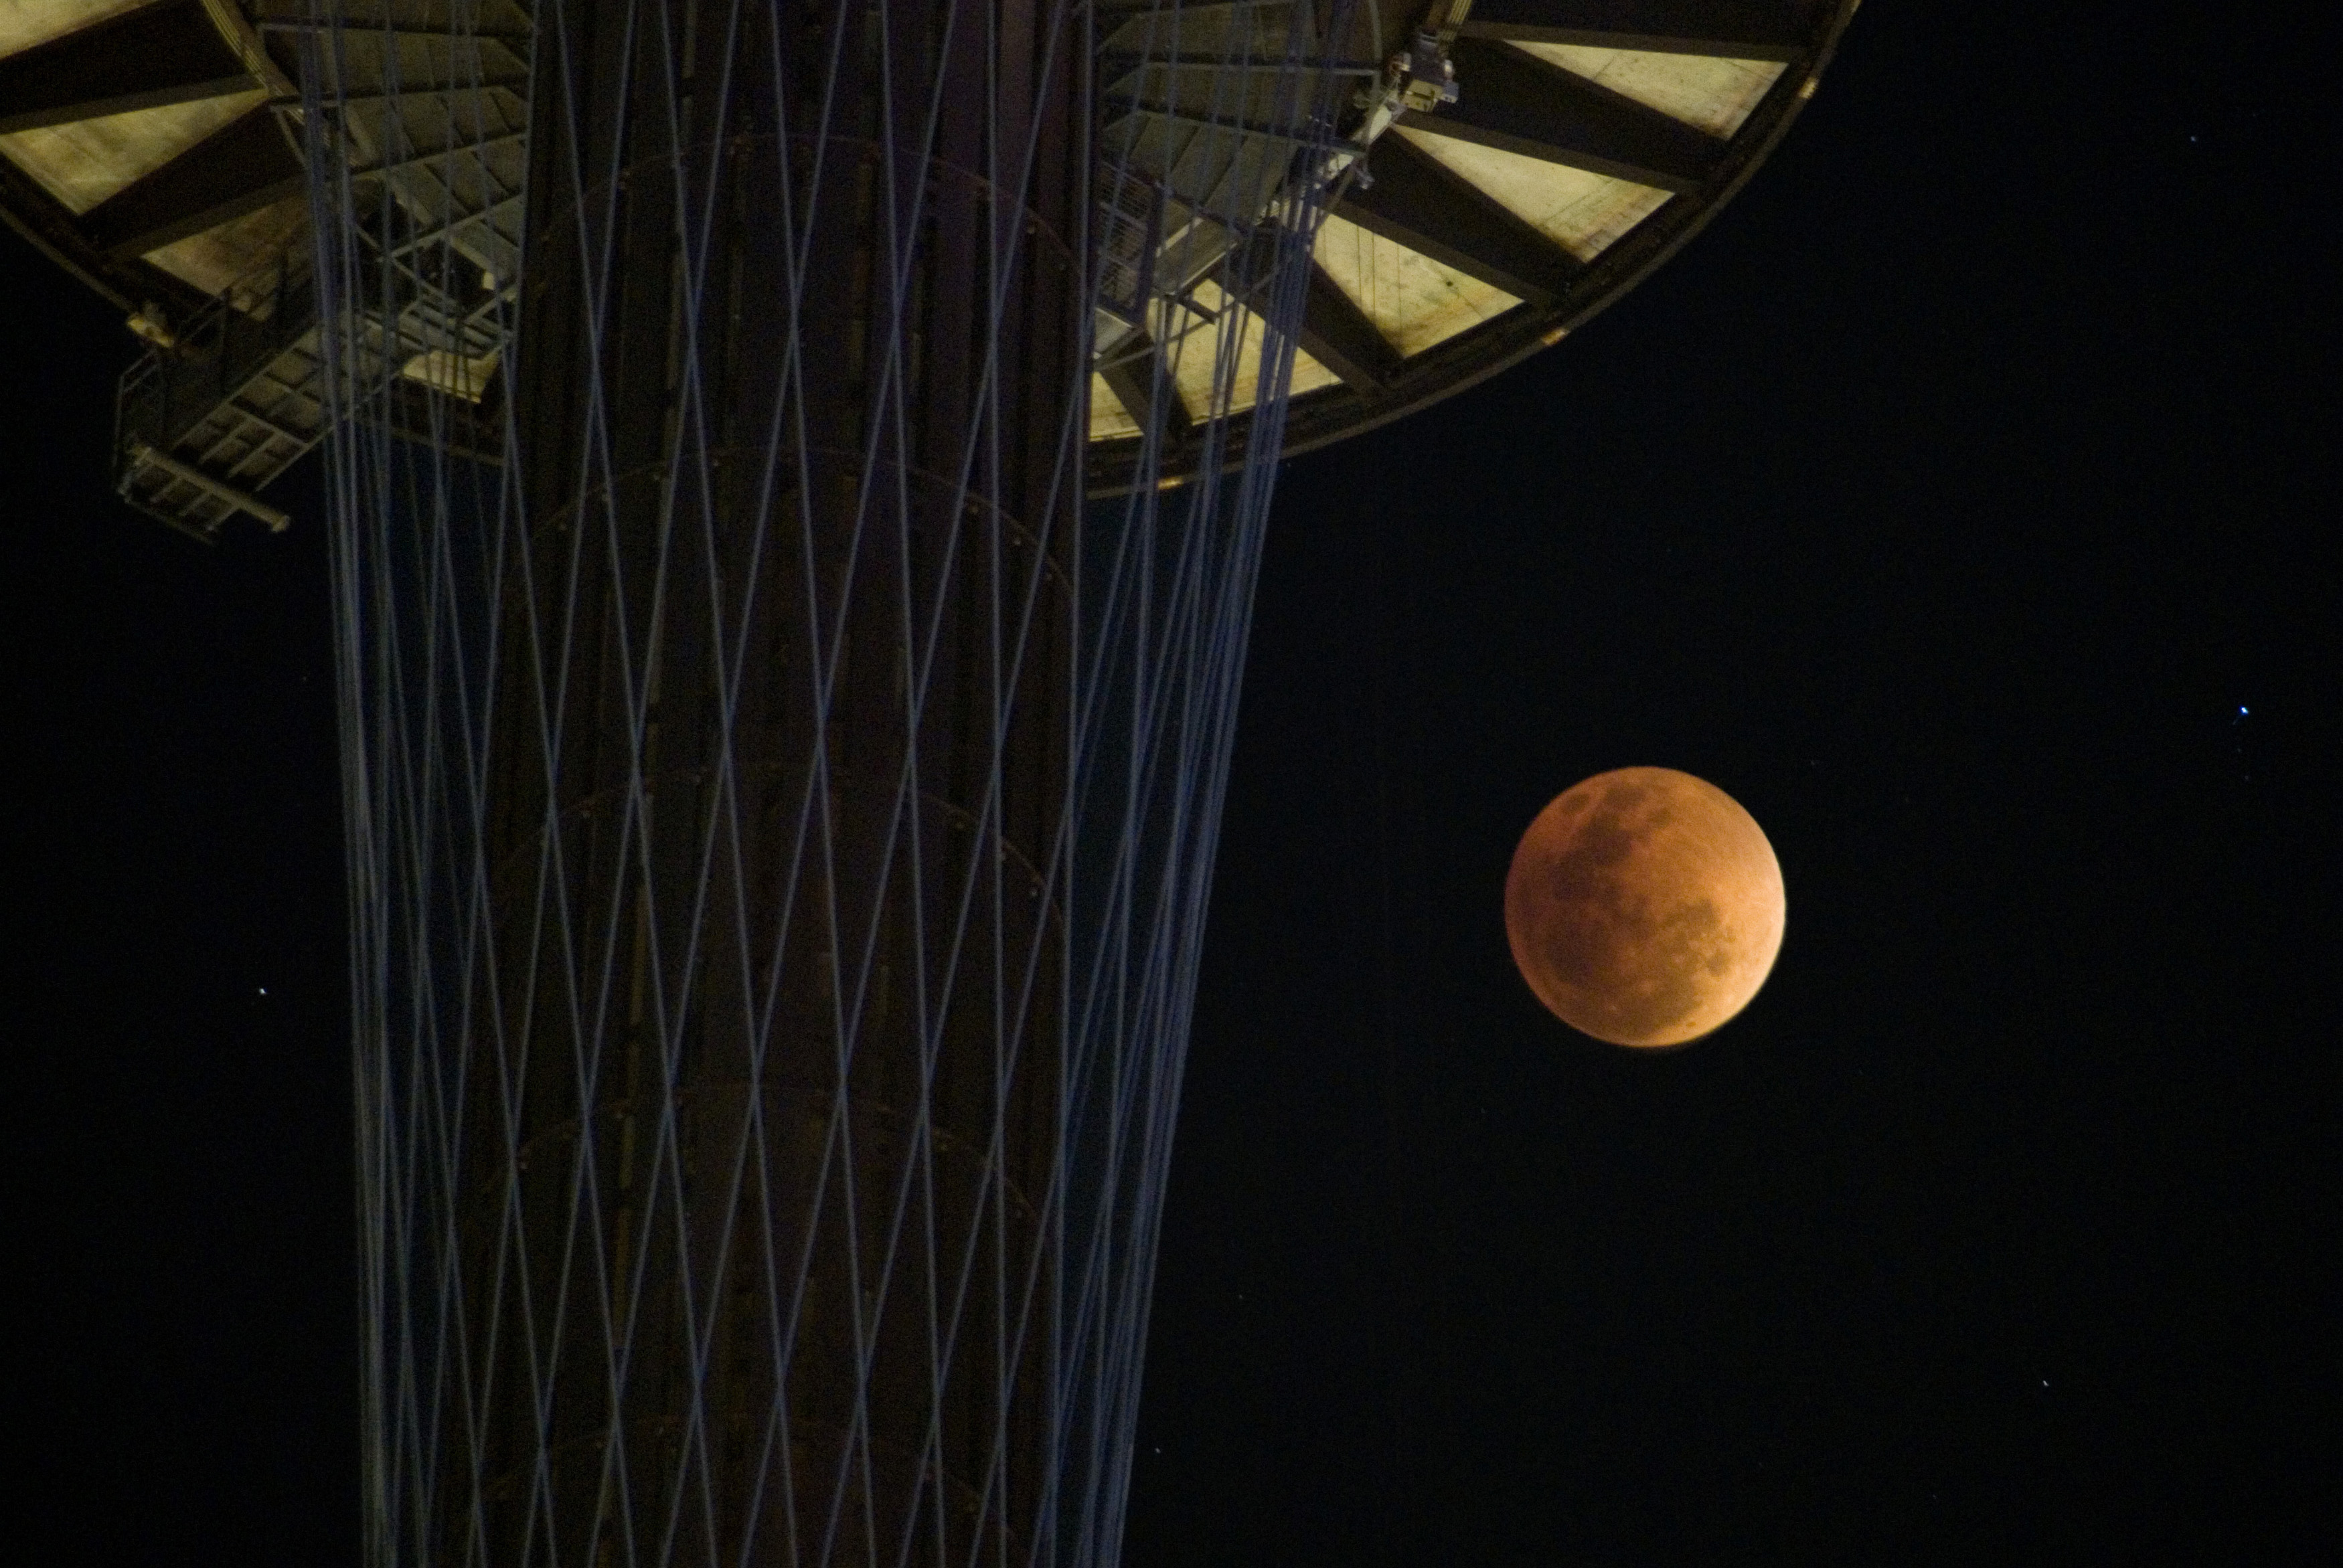 Beautiful copper colored full moon in a night sky during an eclipse pictured against the sydney tower